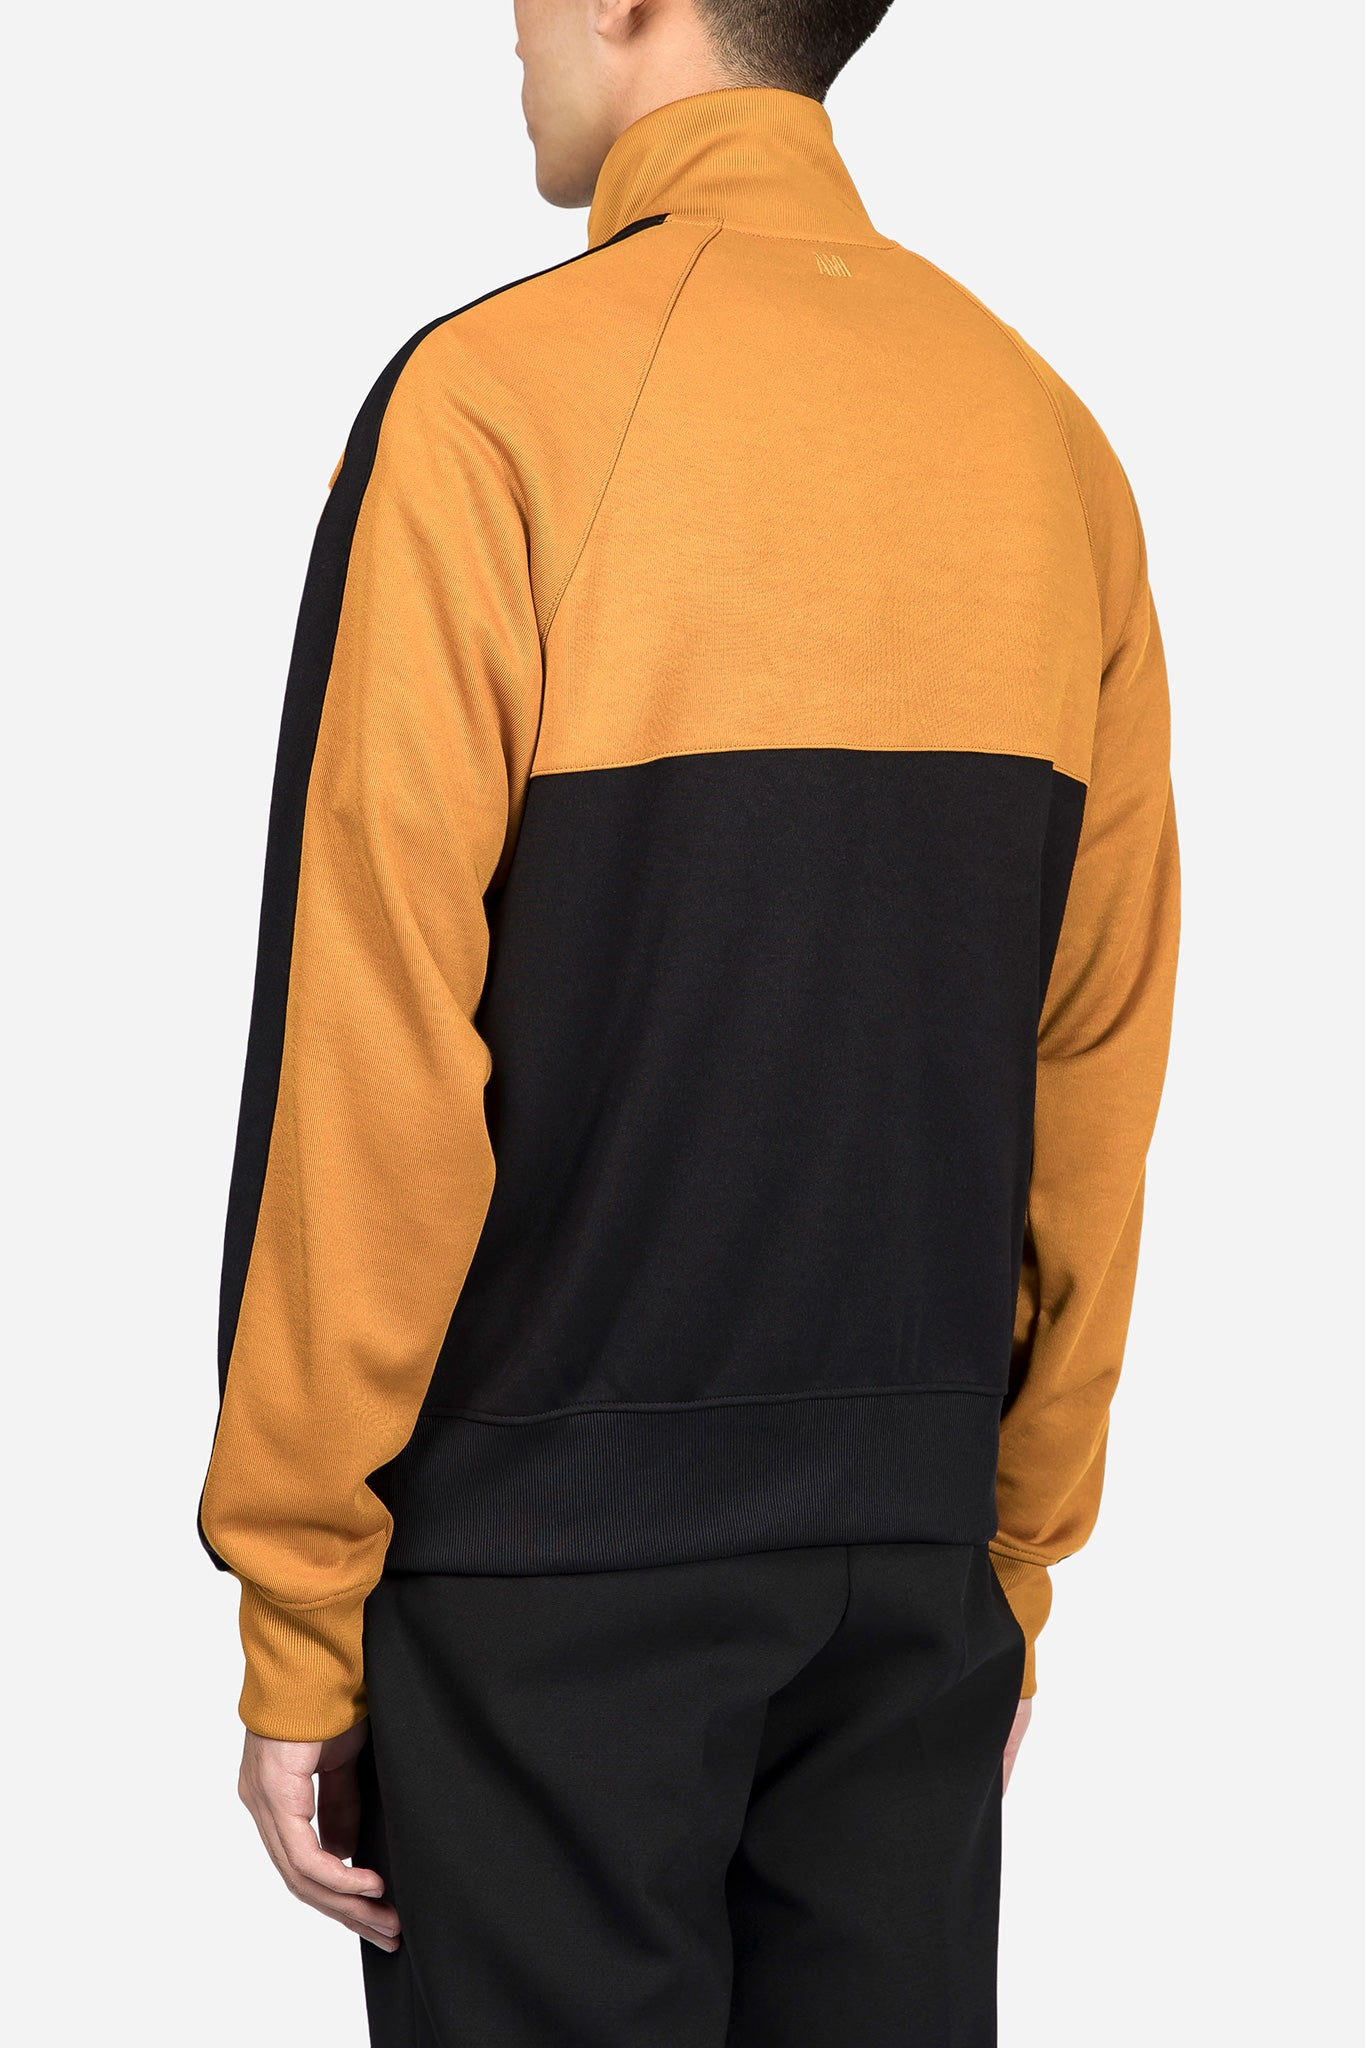 Two Tone Zipped Sweashirt Jaune Noir